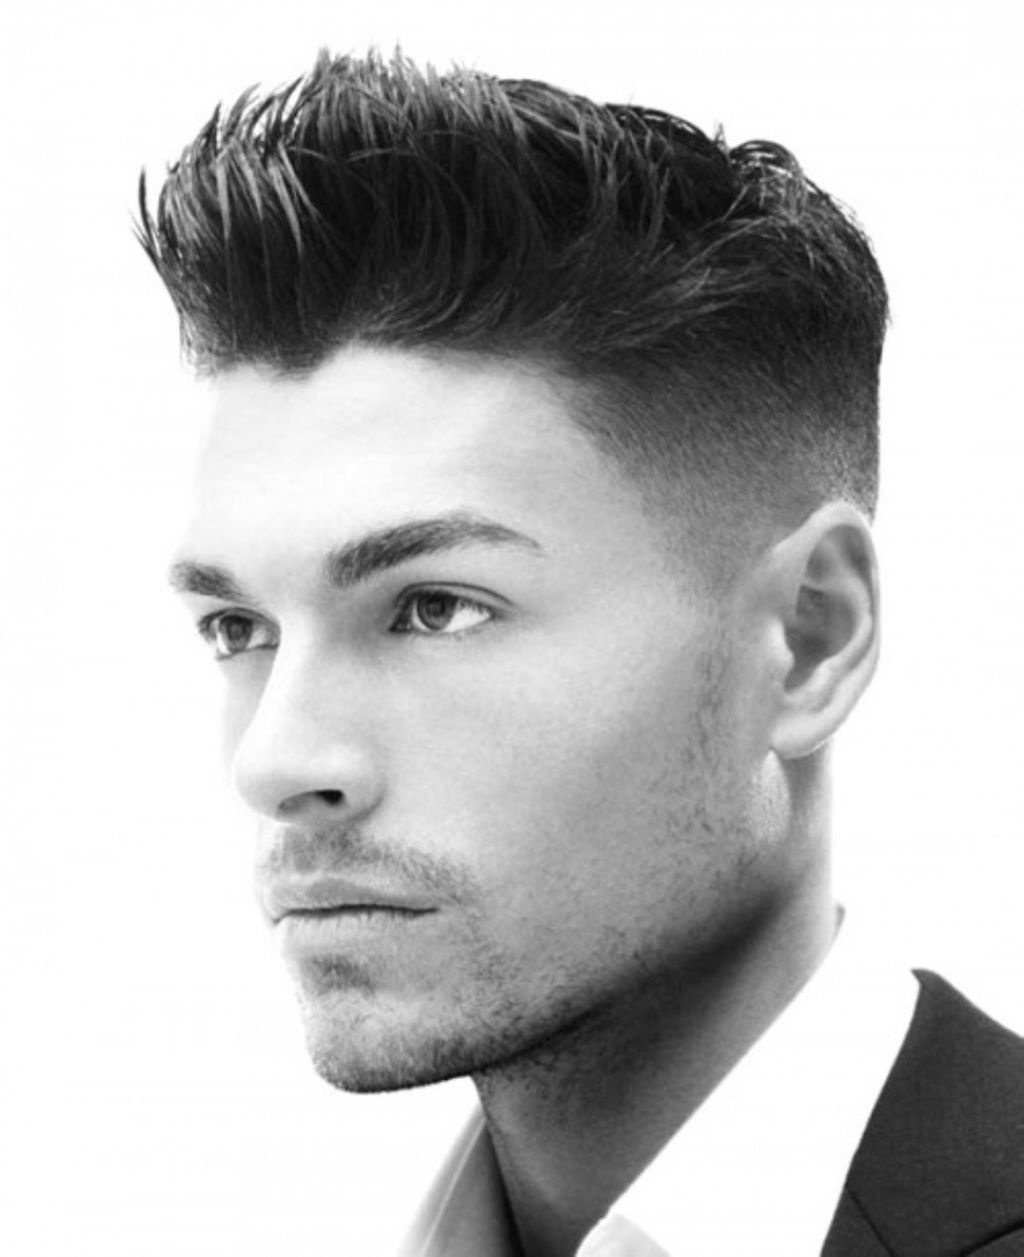 Luxury Men Short Hairstyles For Thick Straight Hair Mens Hairstyles Haircuts For Men Mens Haircuts Short